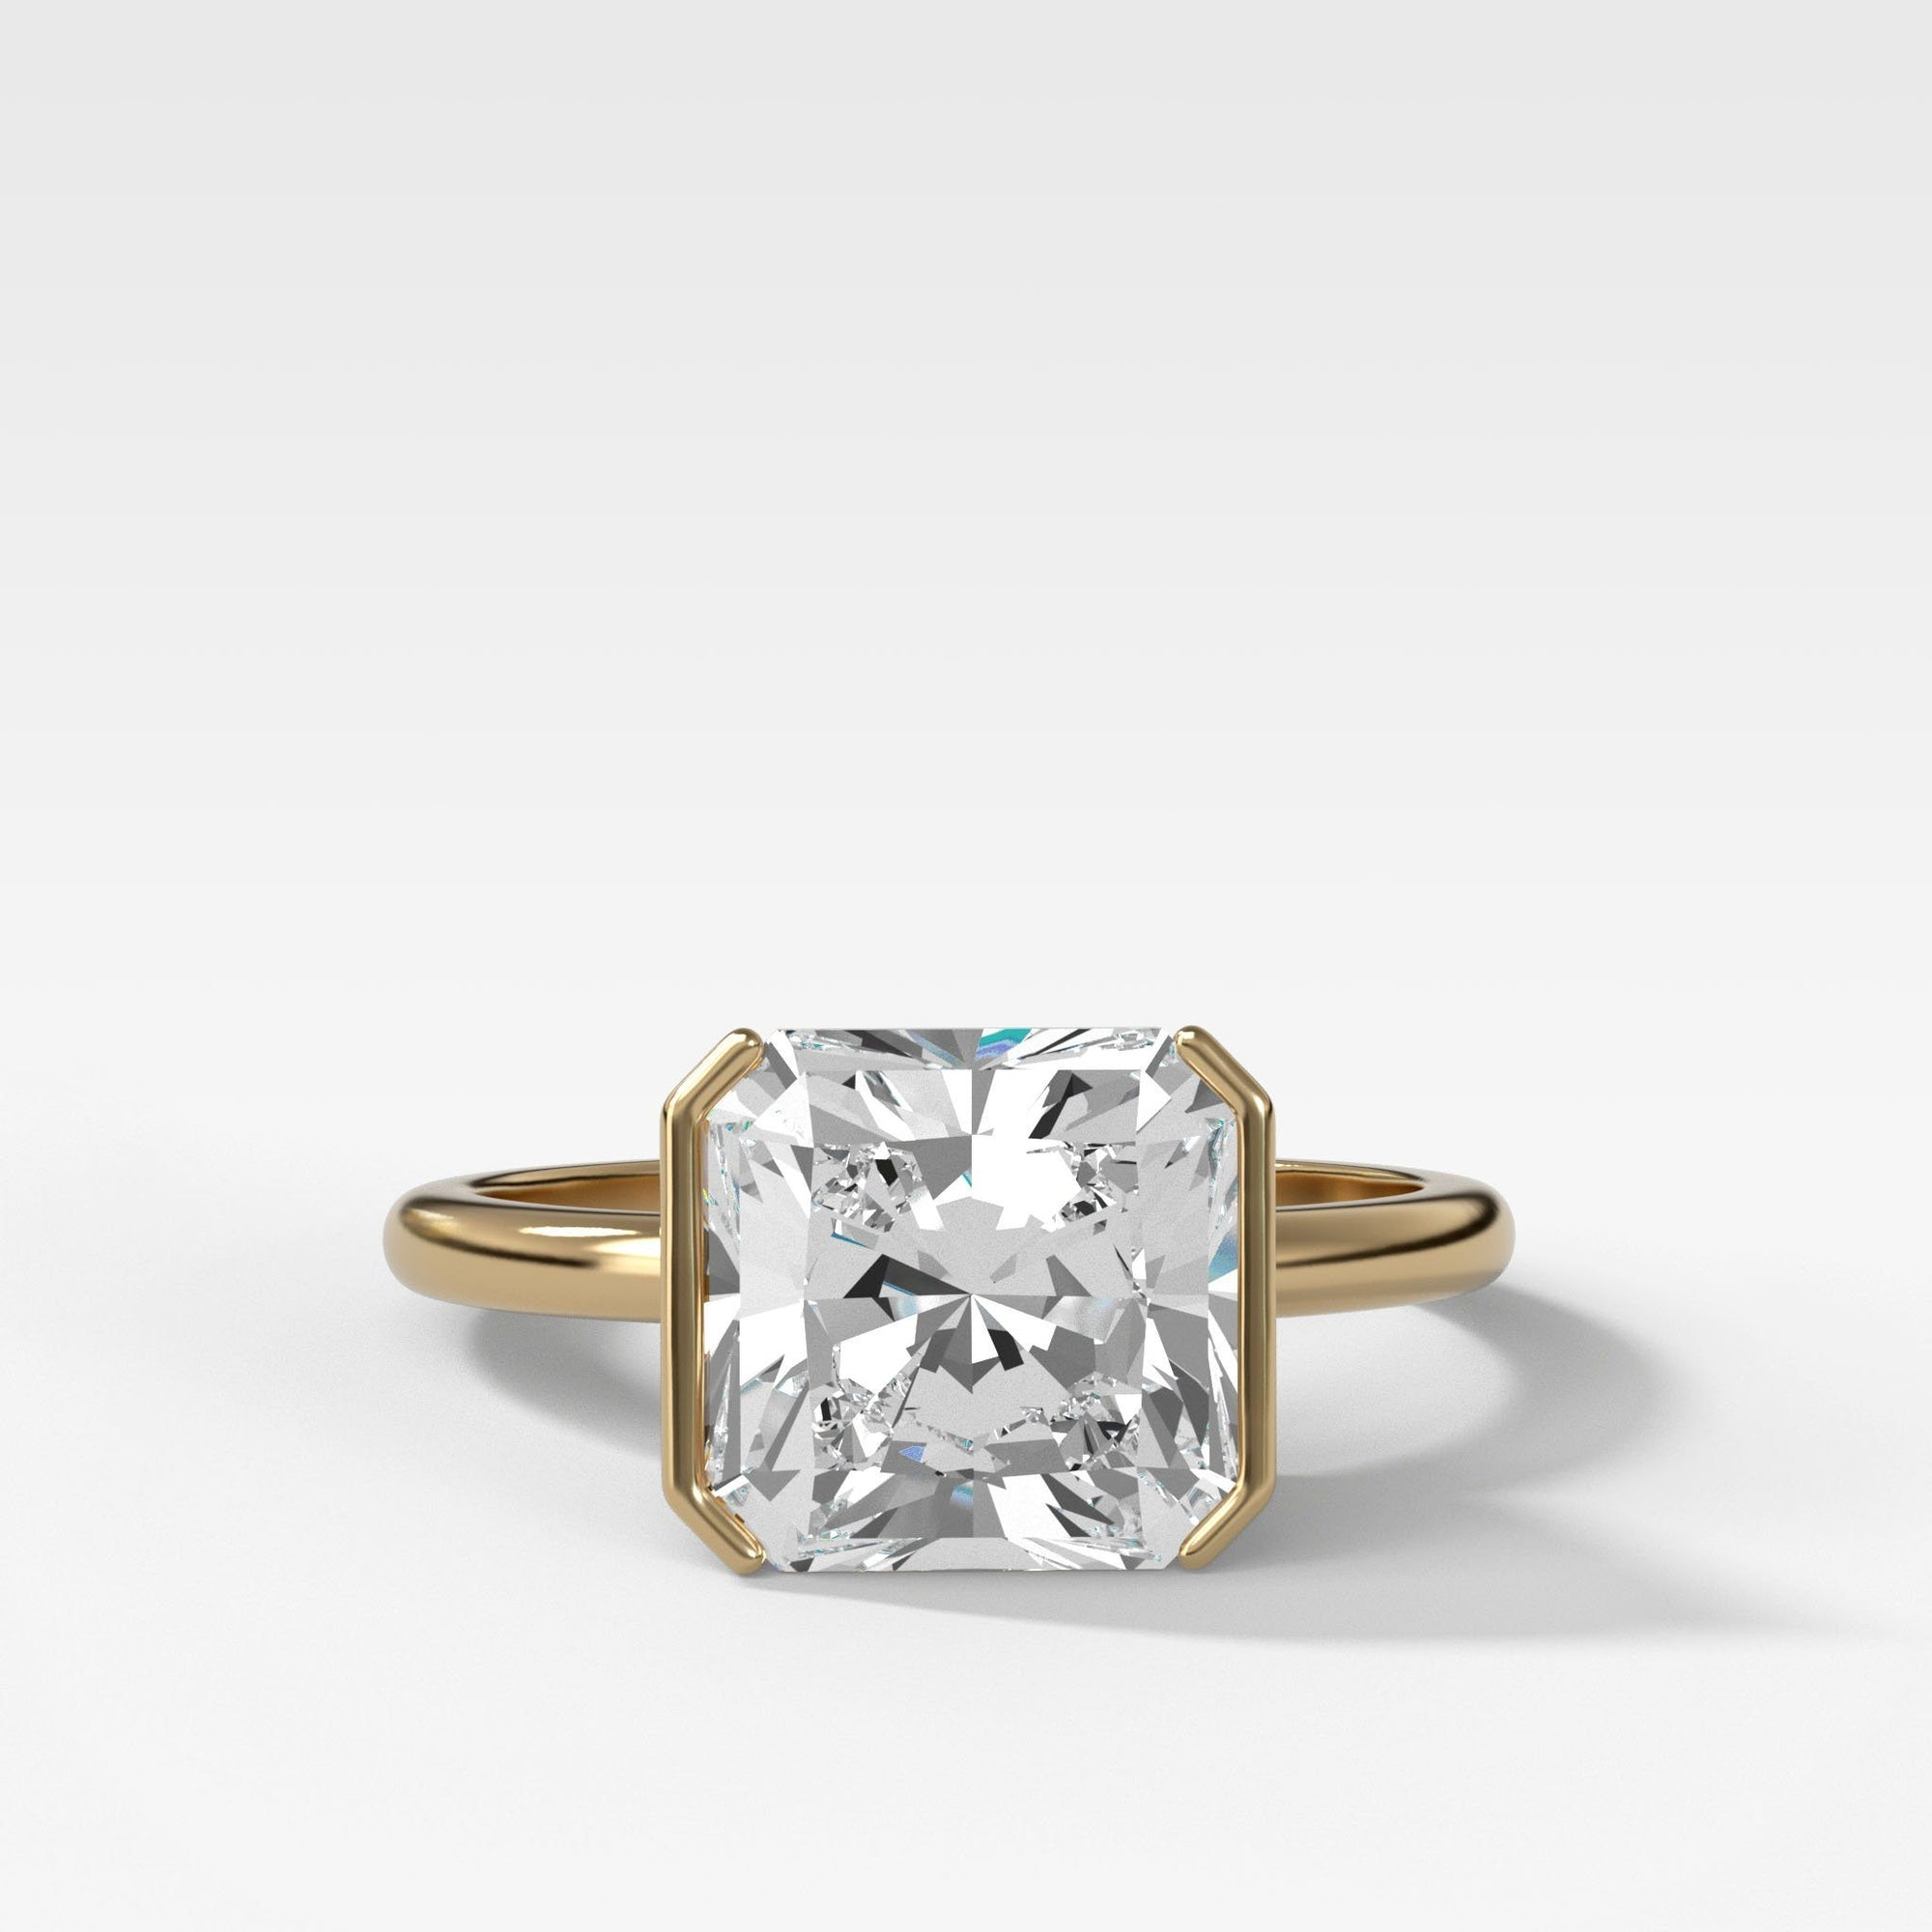 Half Bezel Solitaire Engagement Ring With Square Radiant Cut in Yellow Gold by Good Stone